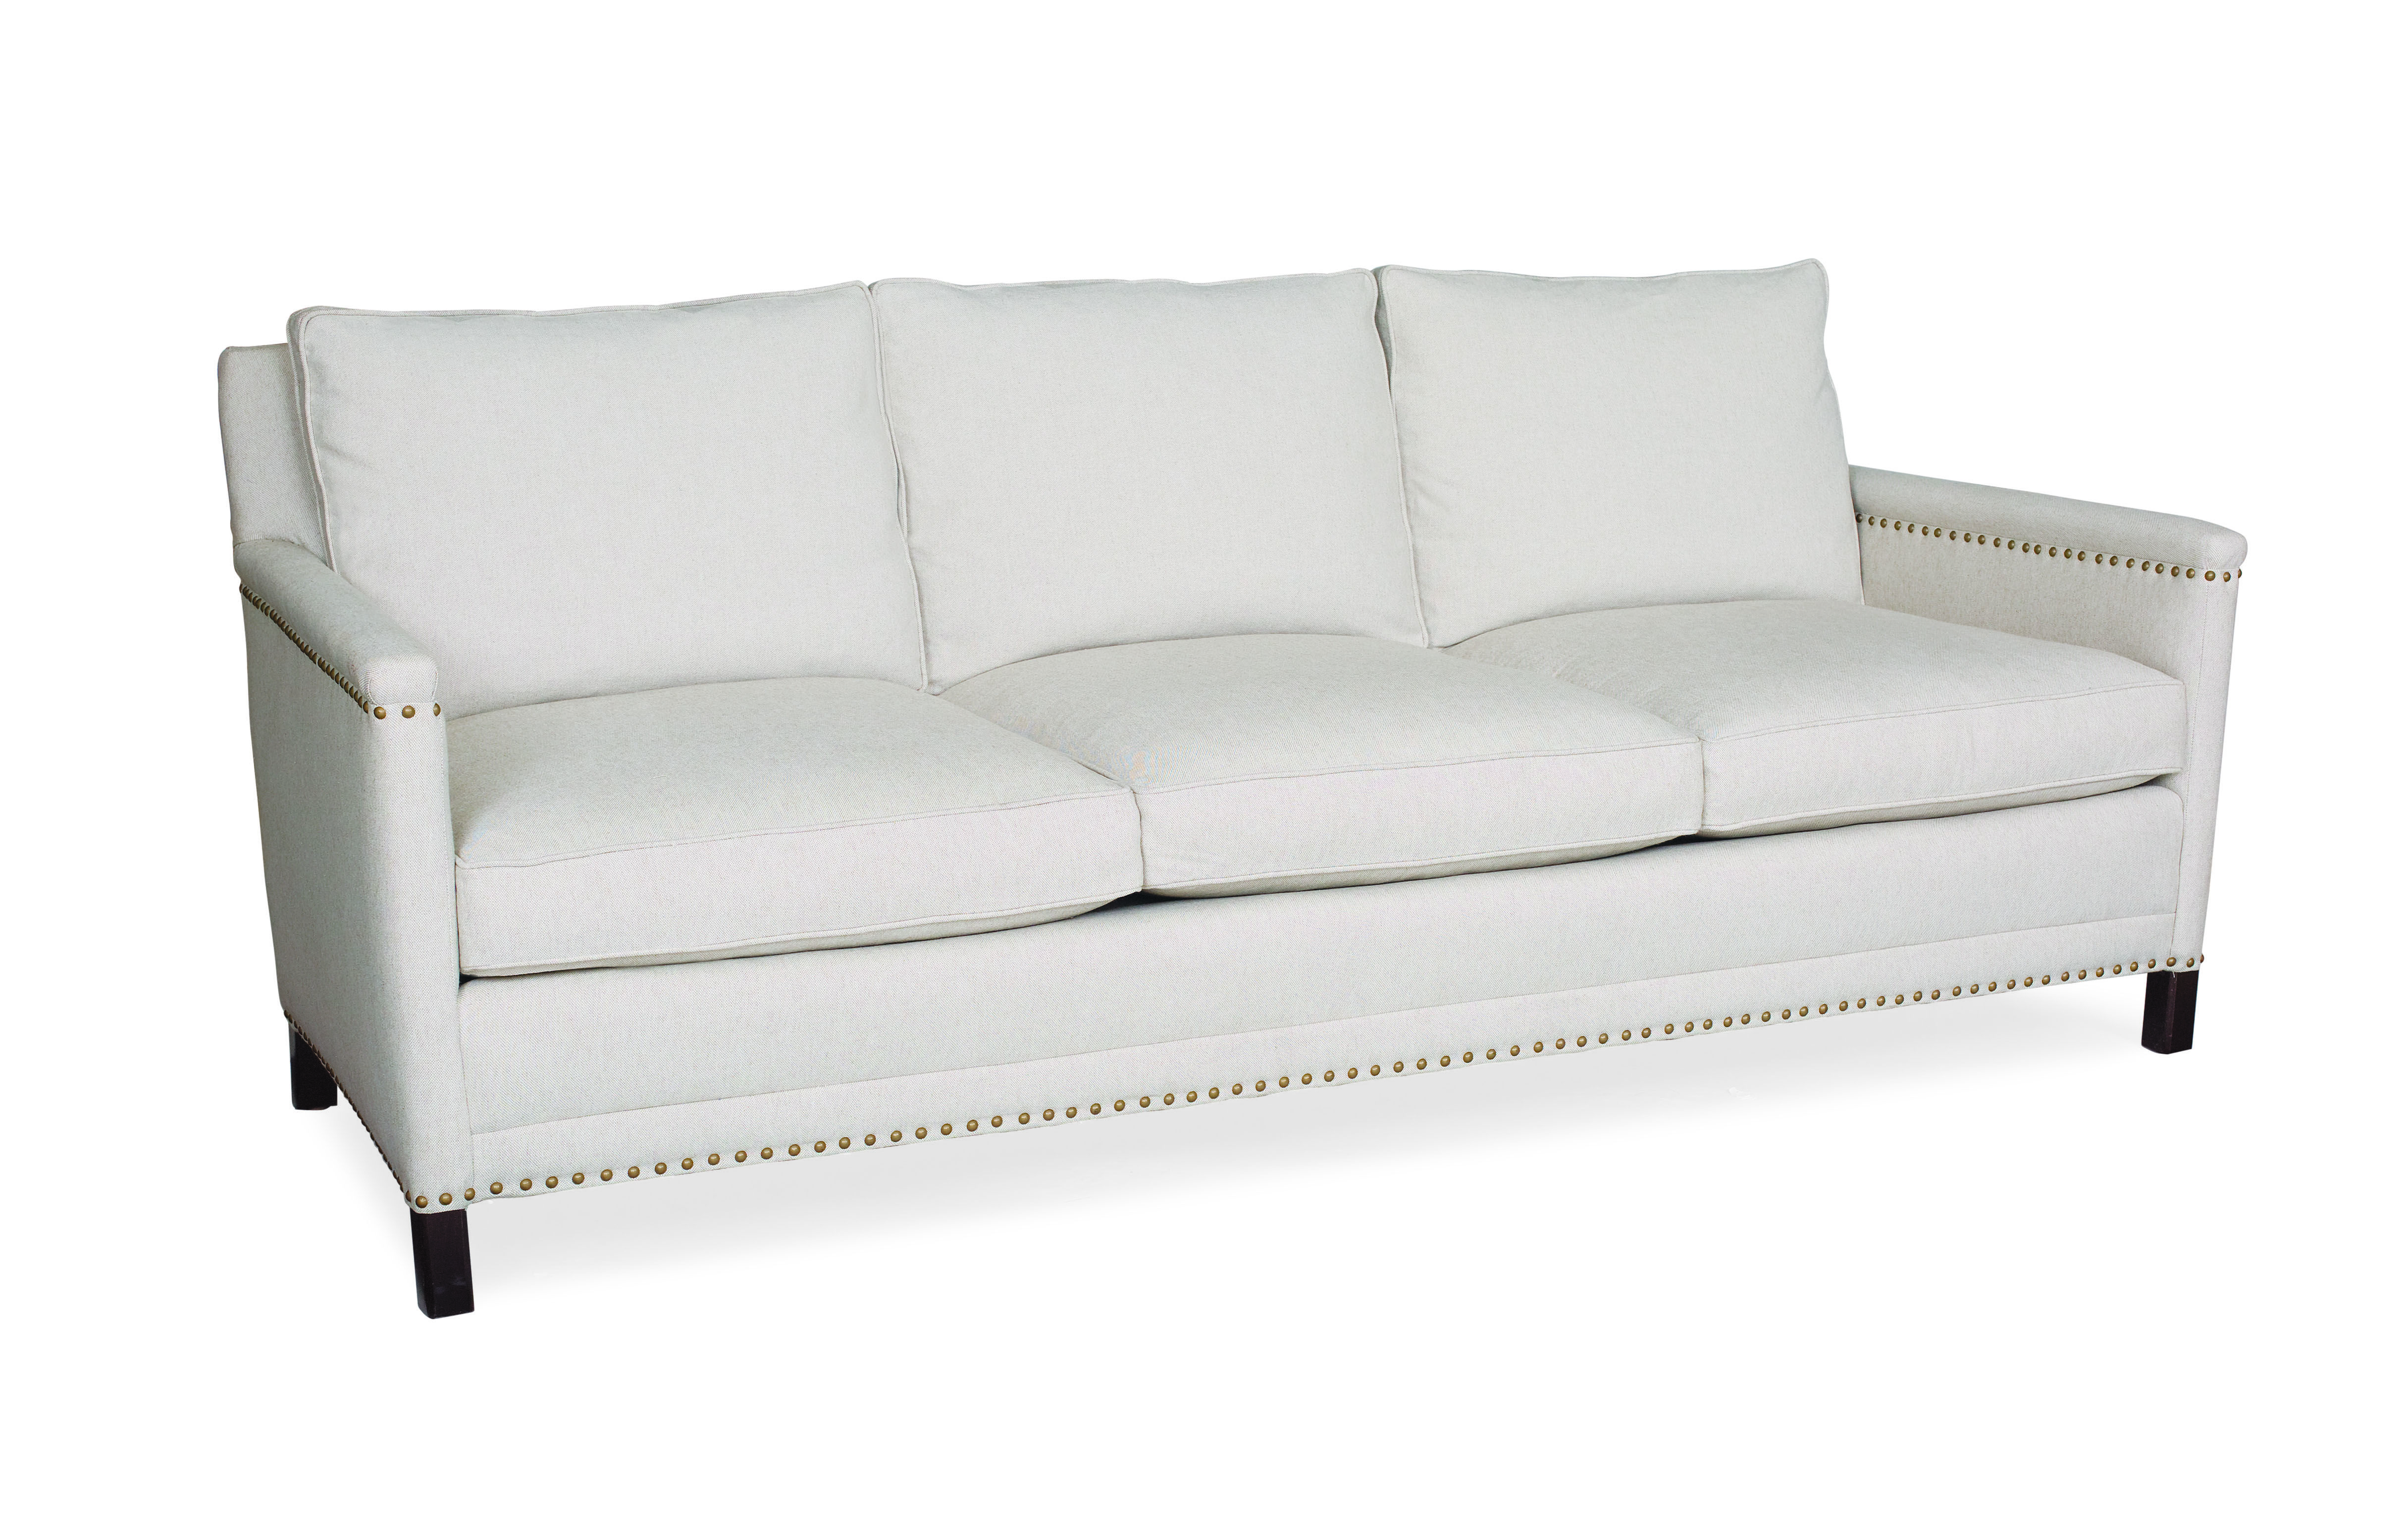 Lee Industries Sofa In Basket Natural With Small Nail Head Detail